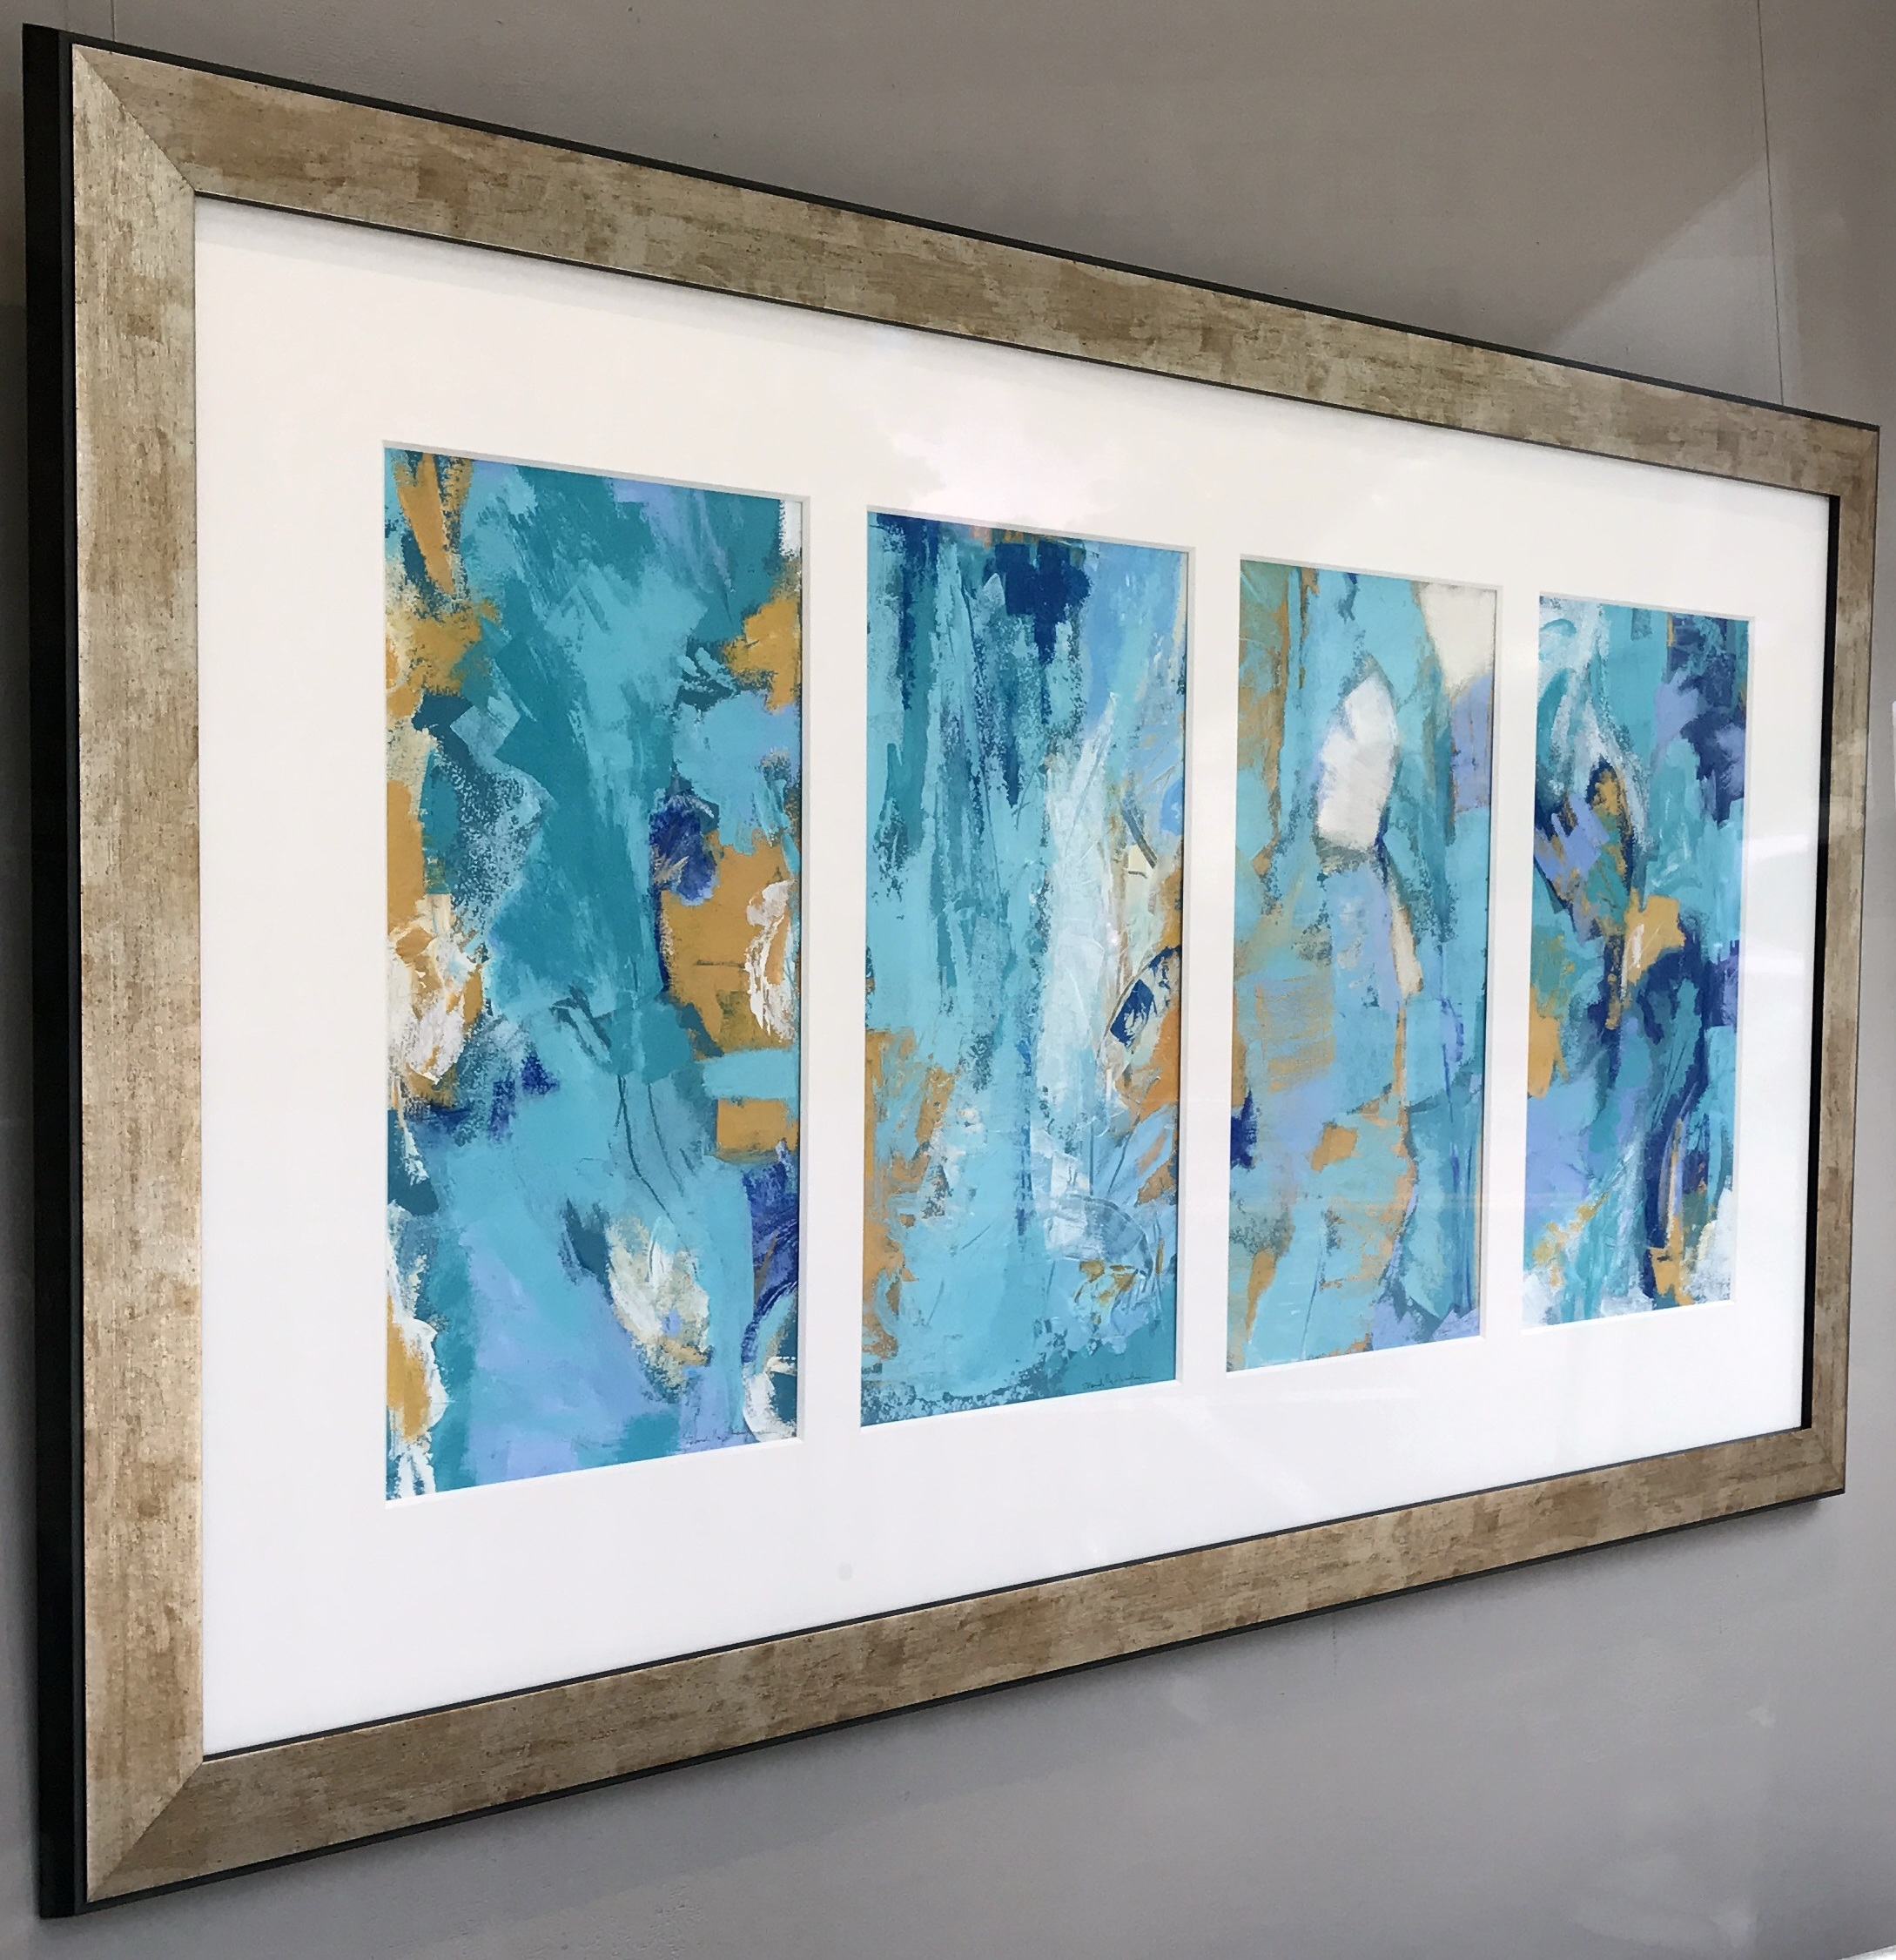 Vertical Blues I, II, III and IV by Deborah Lloyd Kaufman, Acrylic, 33 x 57, $4000